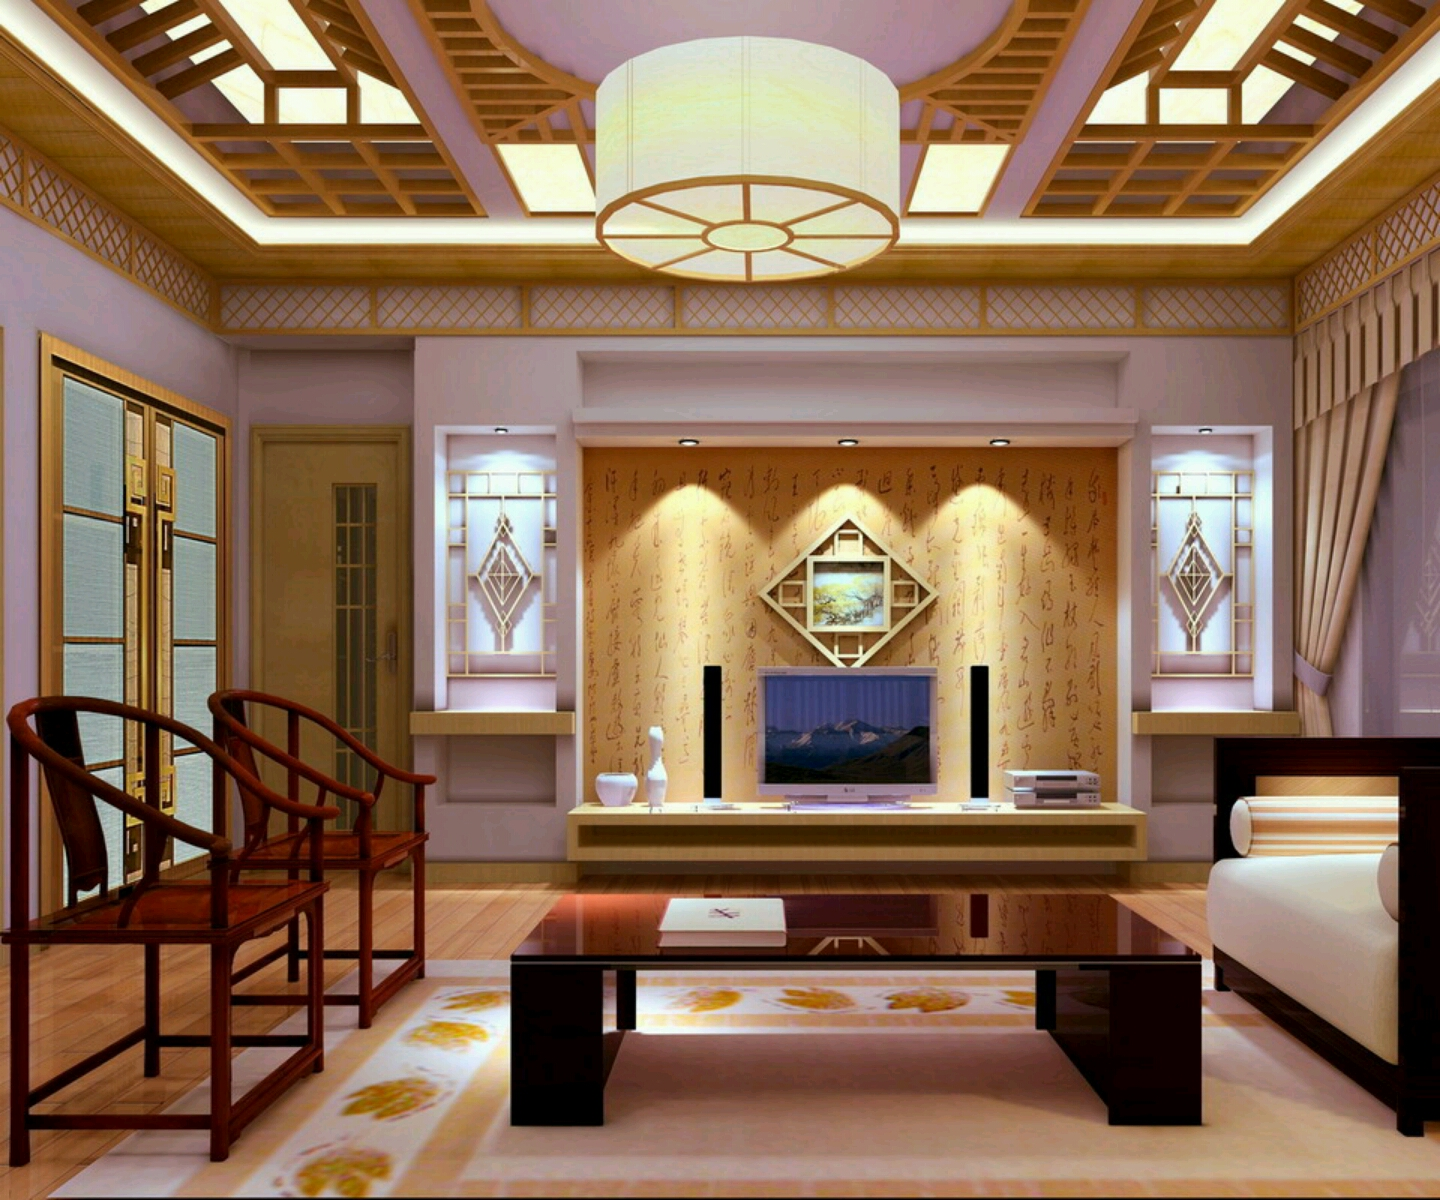 New home designs latest homes interior designs studyrooms for Home plans with interior photos